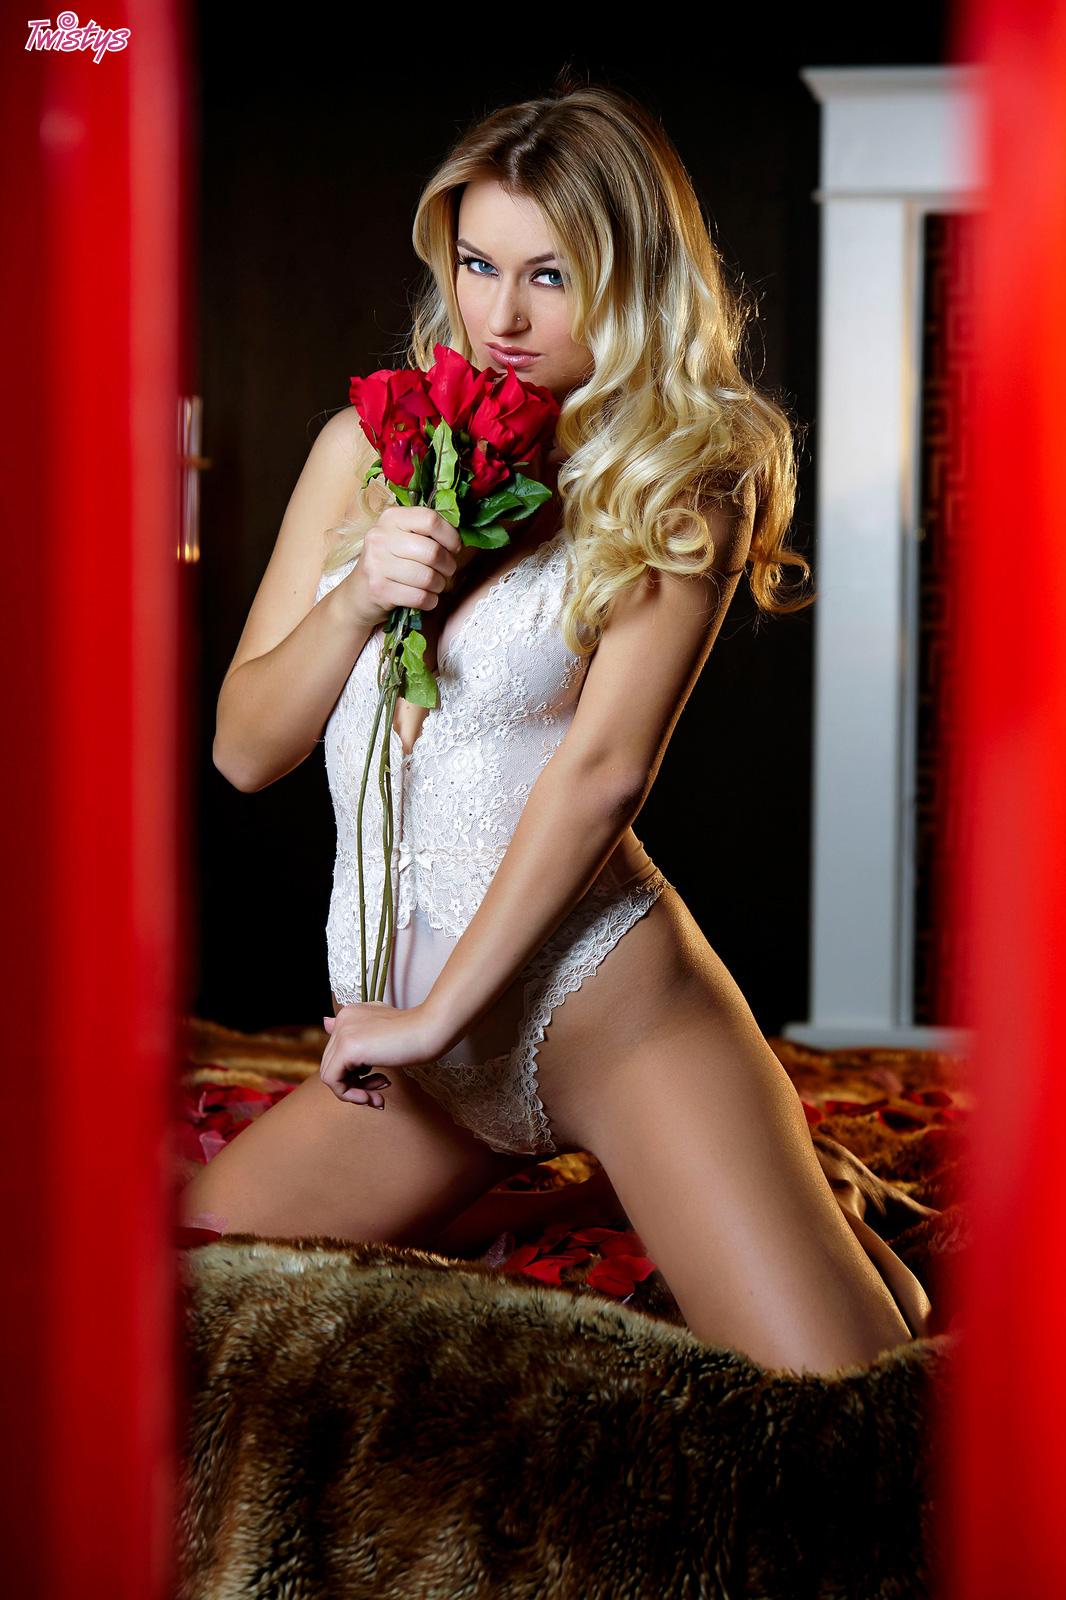 Be Mine?.. featuring Natalia Starr | Twistys.com